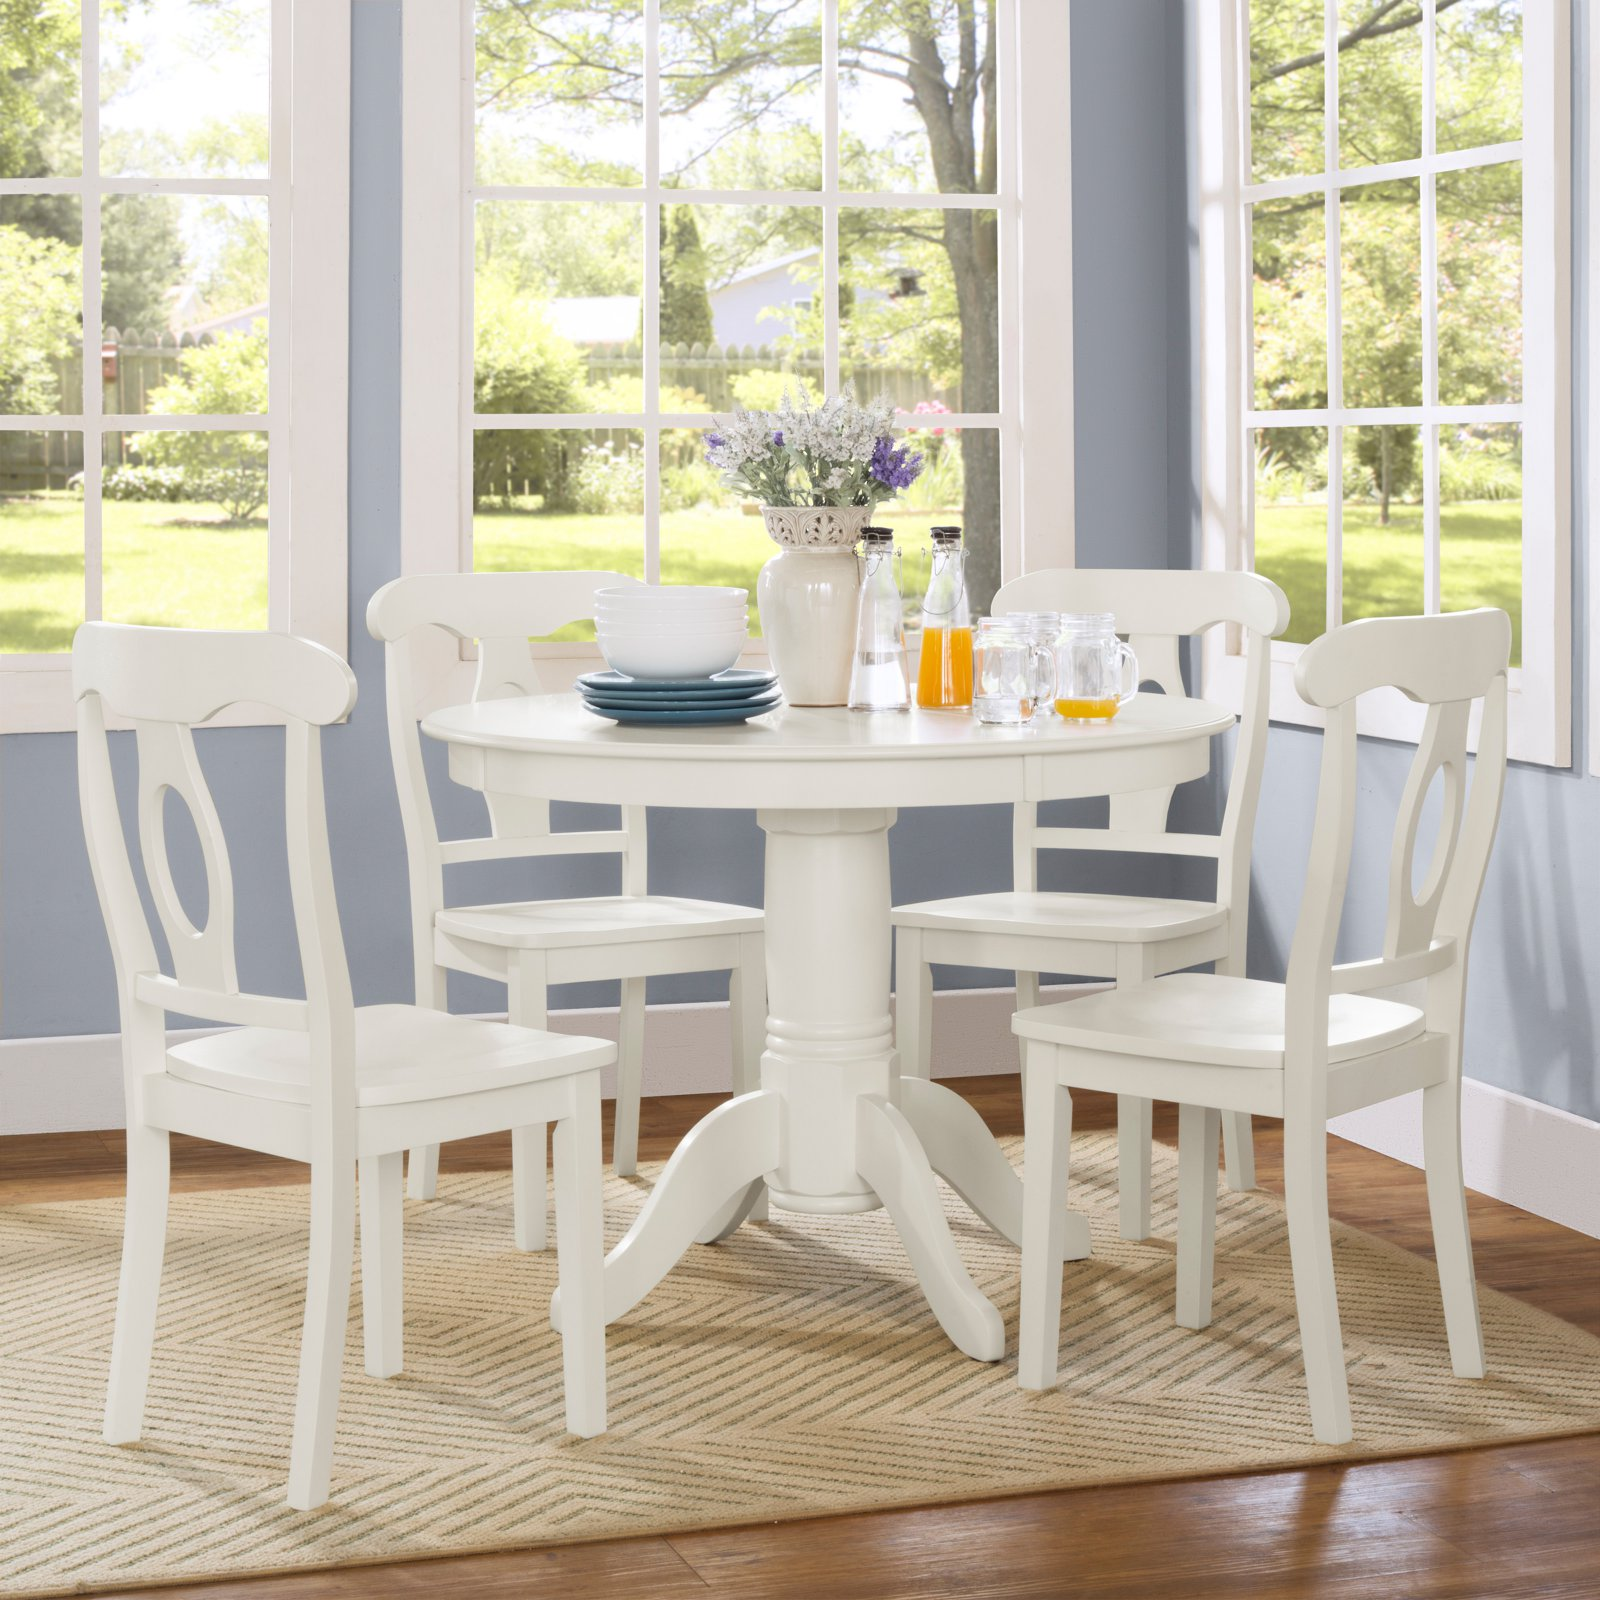 Dorel Living Aubrey 5-Piece Traditional Height Pedestal Dining Room Set, Multiple Colors by Dorel Asia